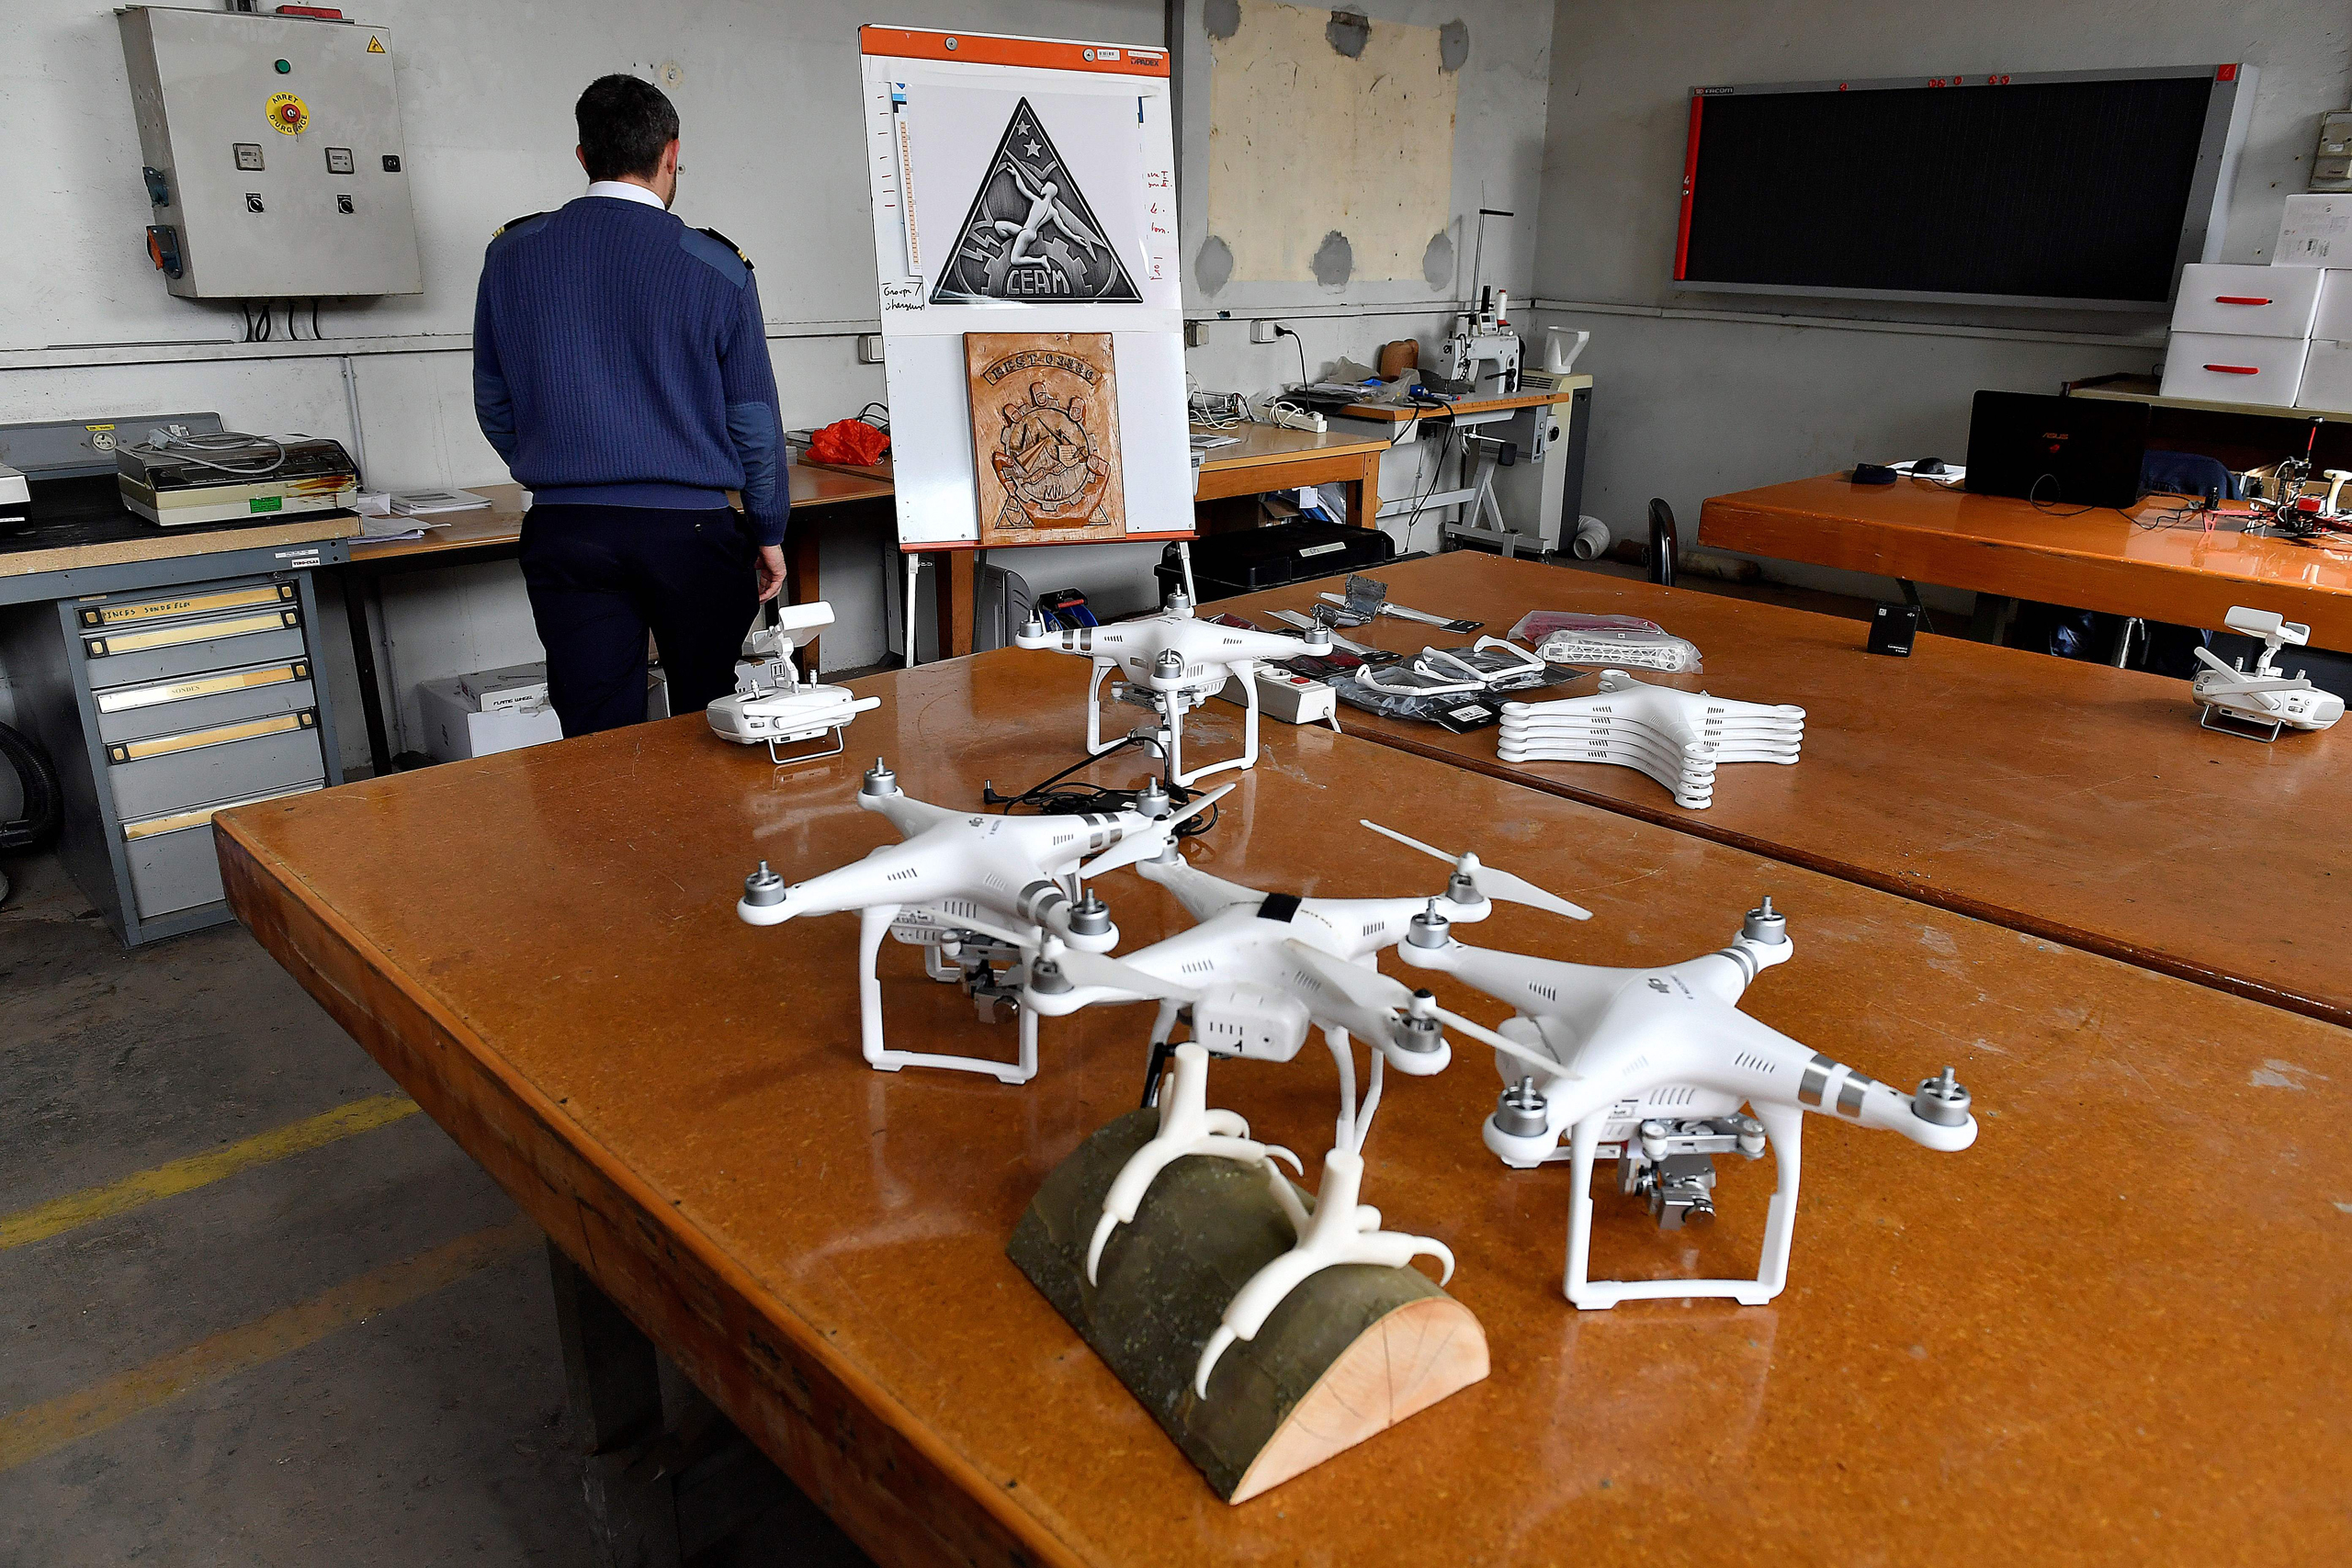 Drones that were intercepted by eagles are being repaired following a military exercise at the Mont-de-Marsan airbase in southwestern France on Feb. 10, 2017.